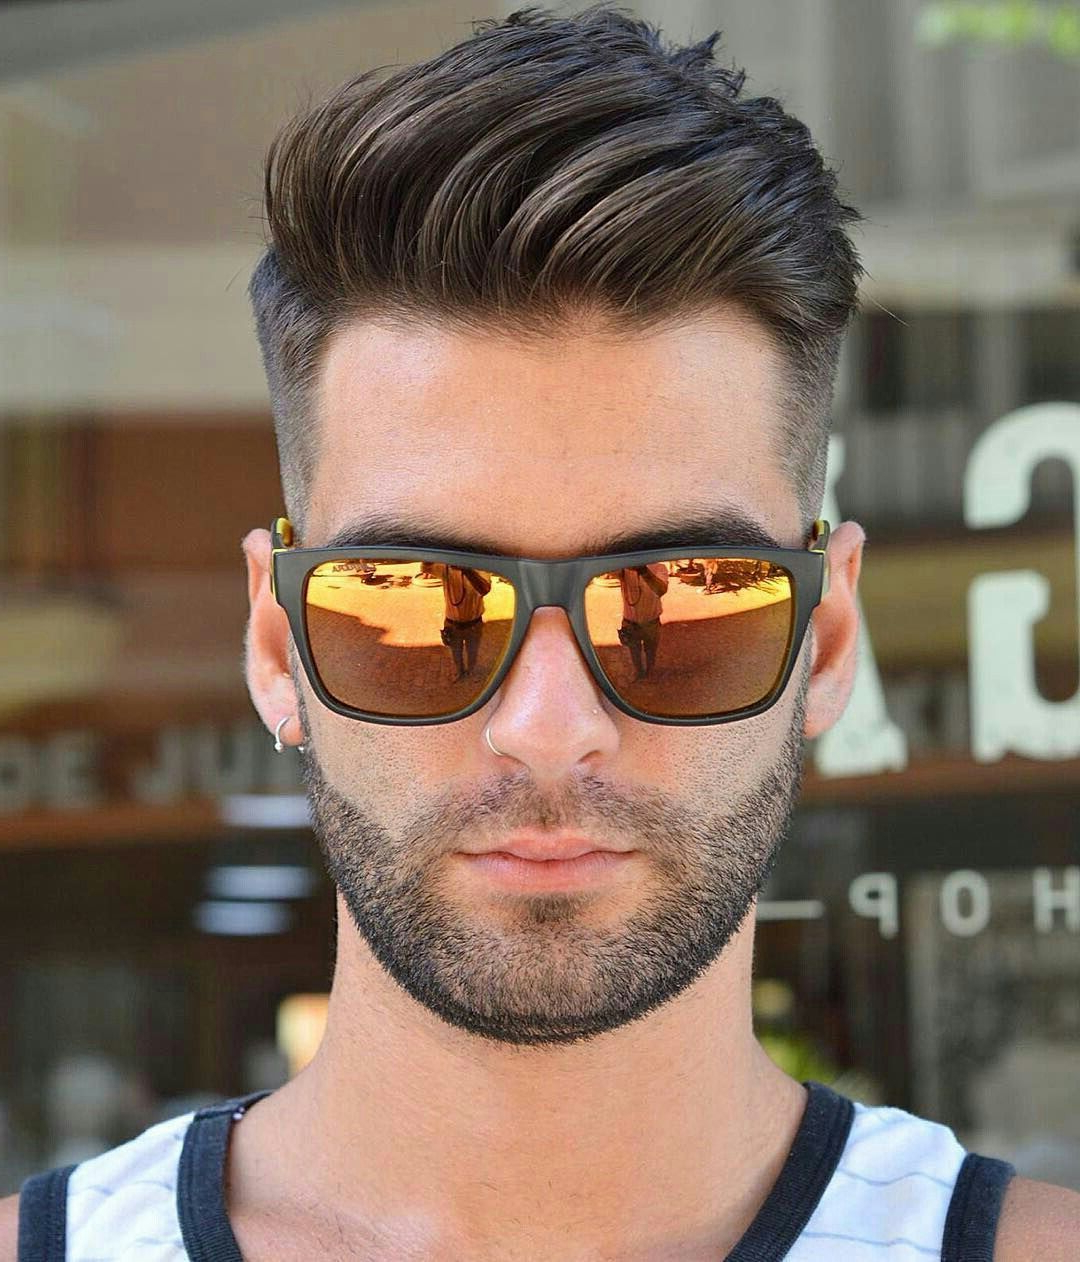 Hair Styles, Haircuts For Men (View 10 of 20)